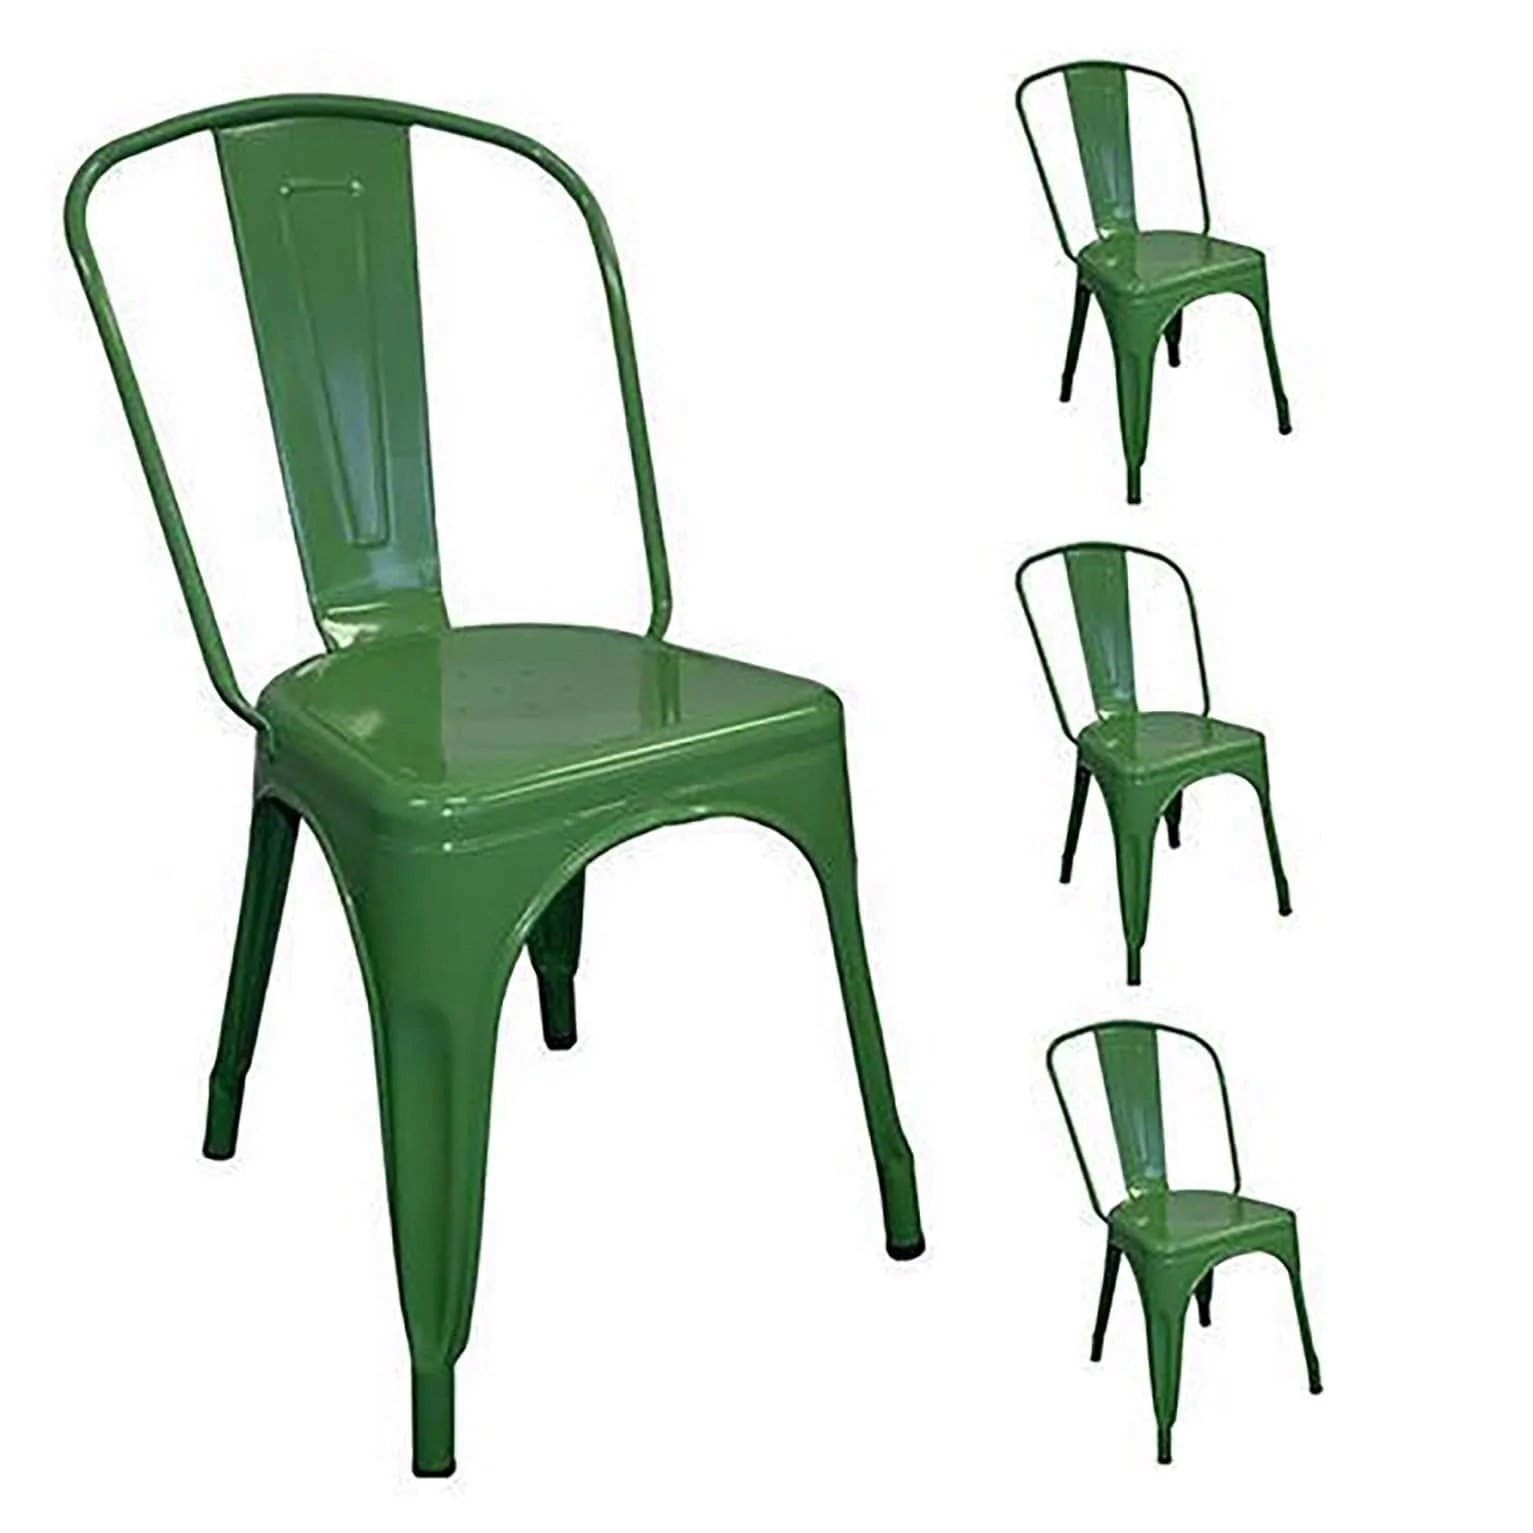 Egg Chair Perth Tolix Replica Cafe Chair Green Buy Online Afterpay